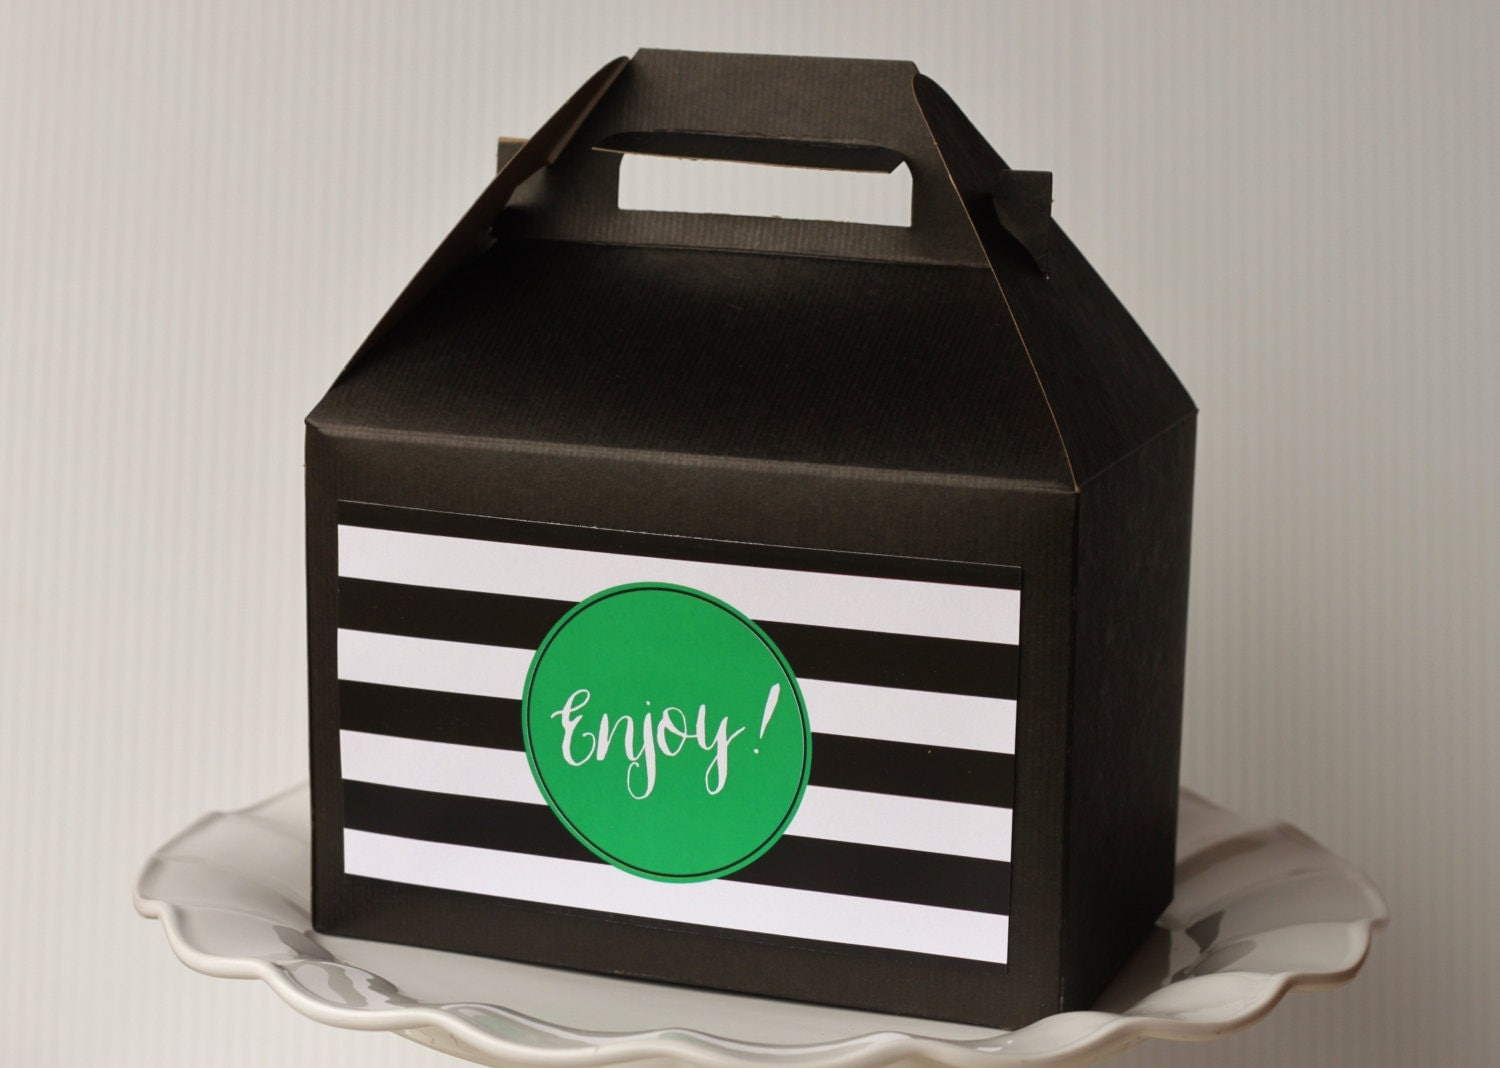 Set 10 Black Gable Boxes With Label Black And White Stripe